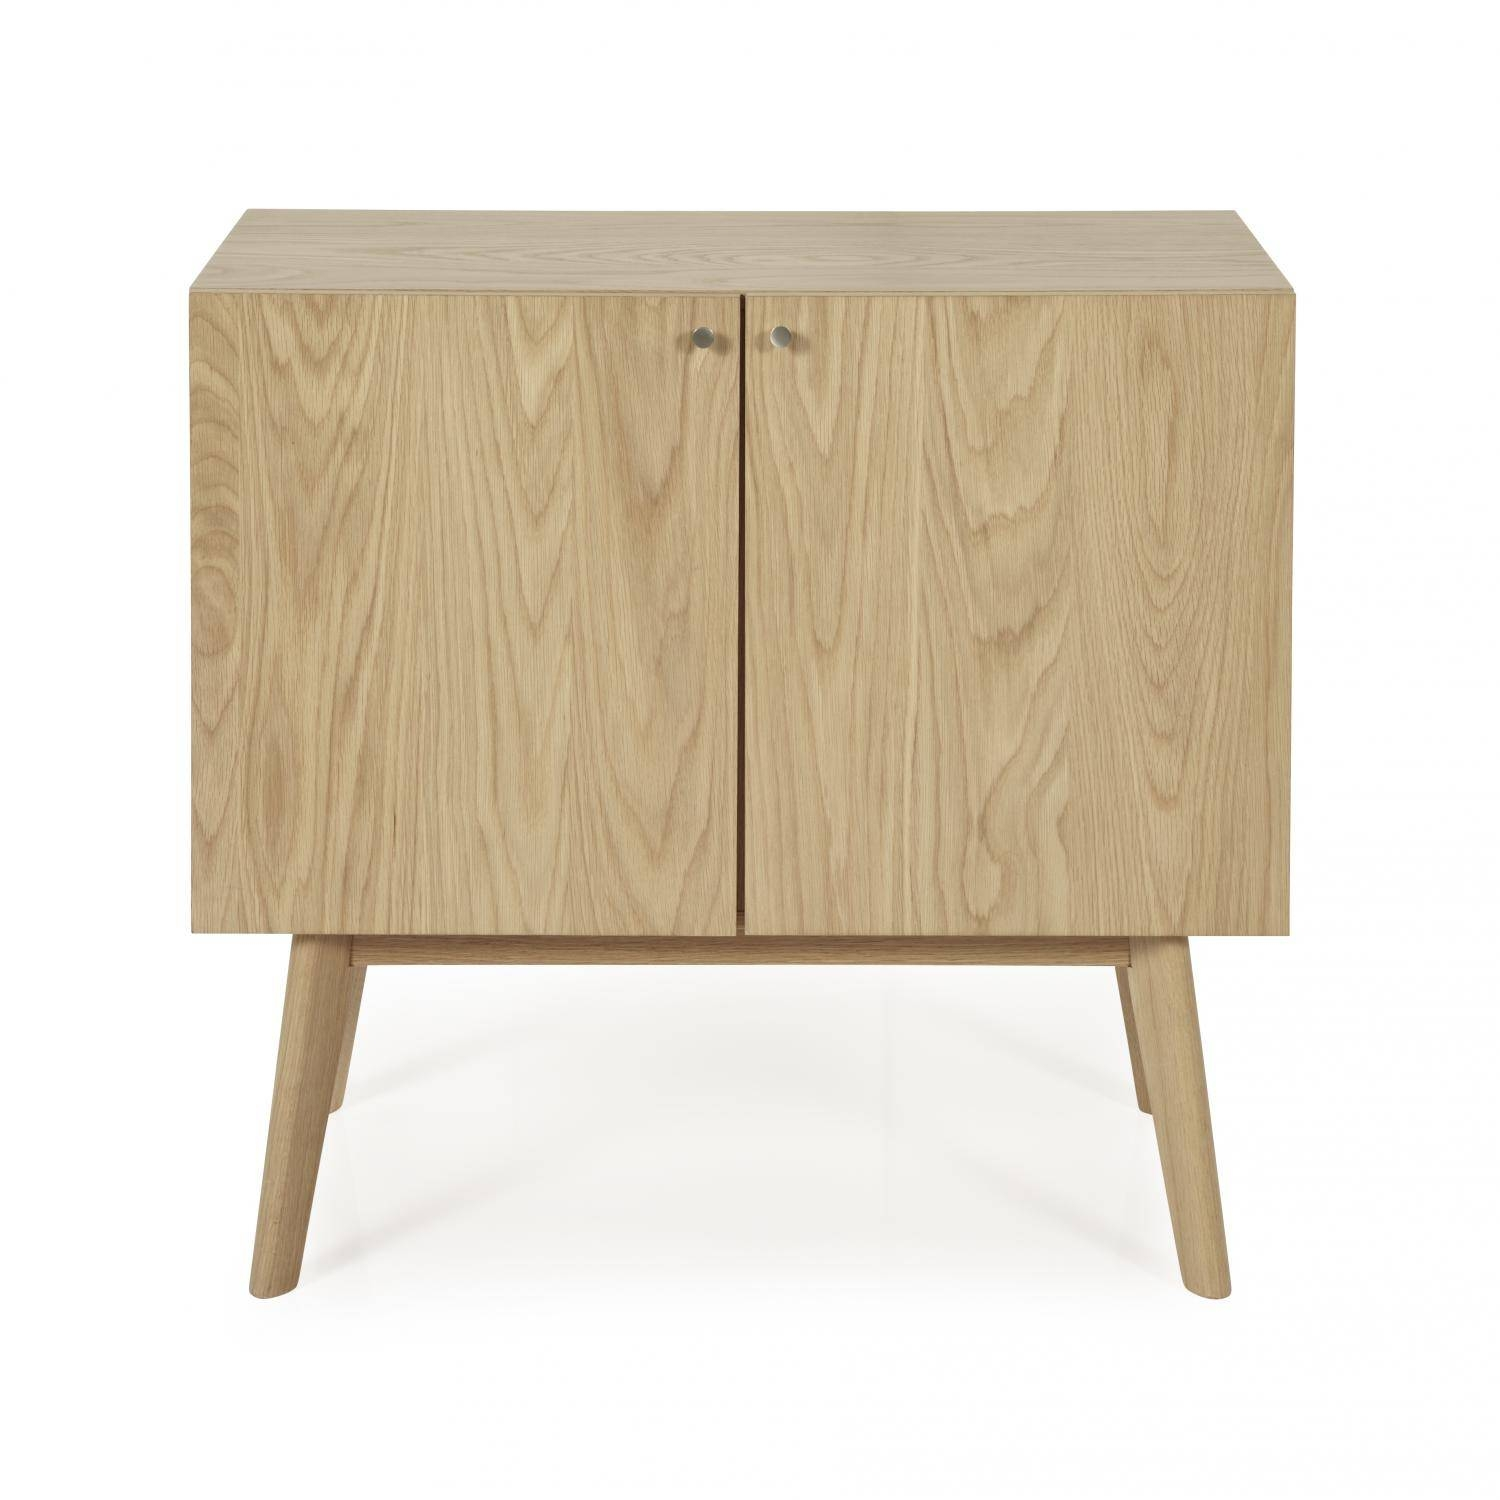 Finchley Small Sideboard – Next Day Delivery Finchley Small intended for Oak Sideboards for Sale (Image 6 of 30)